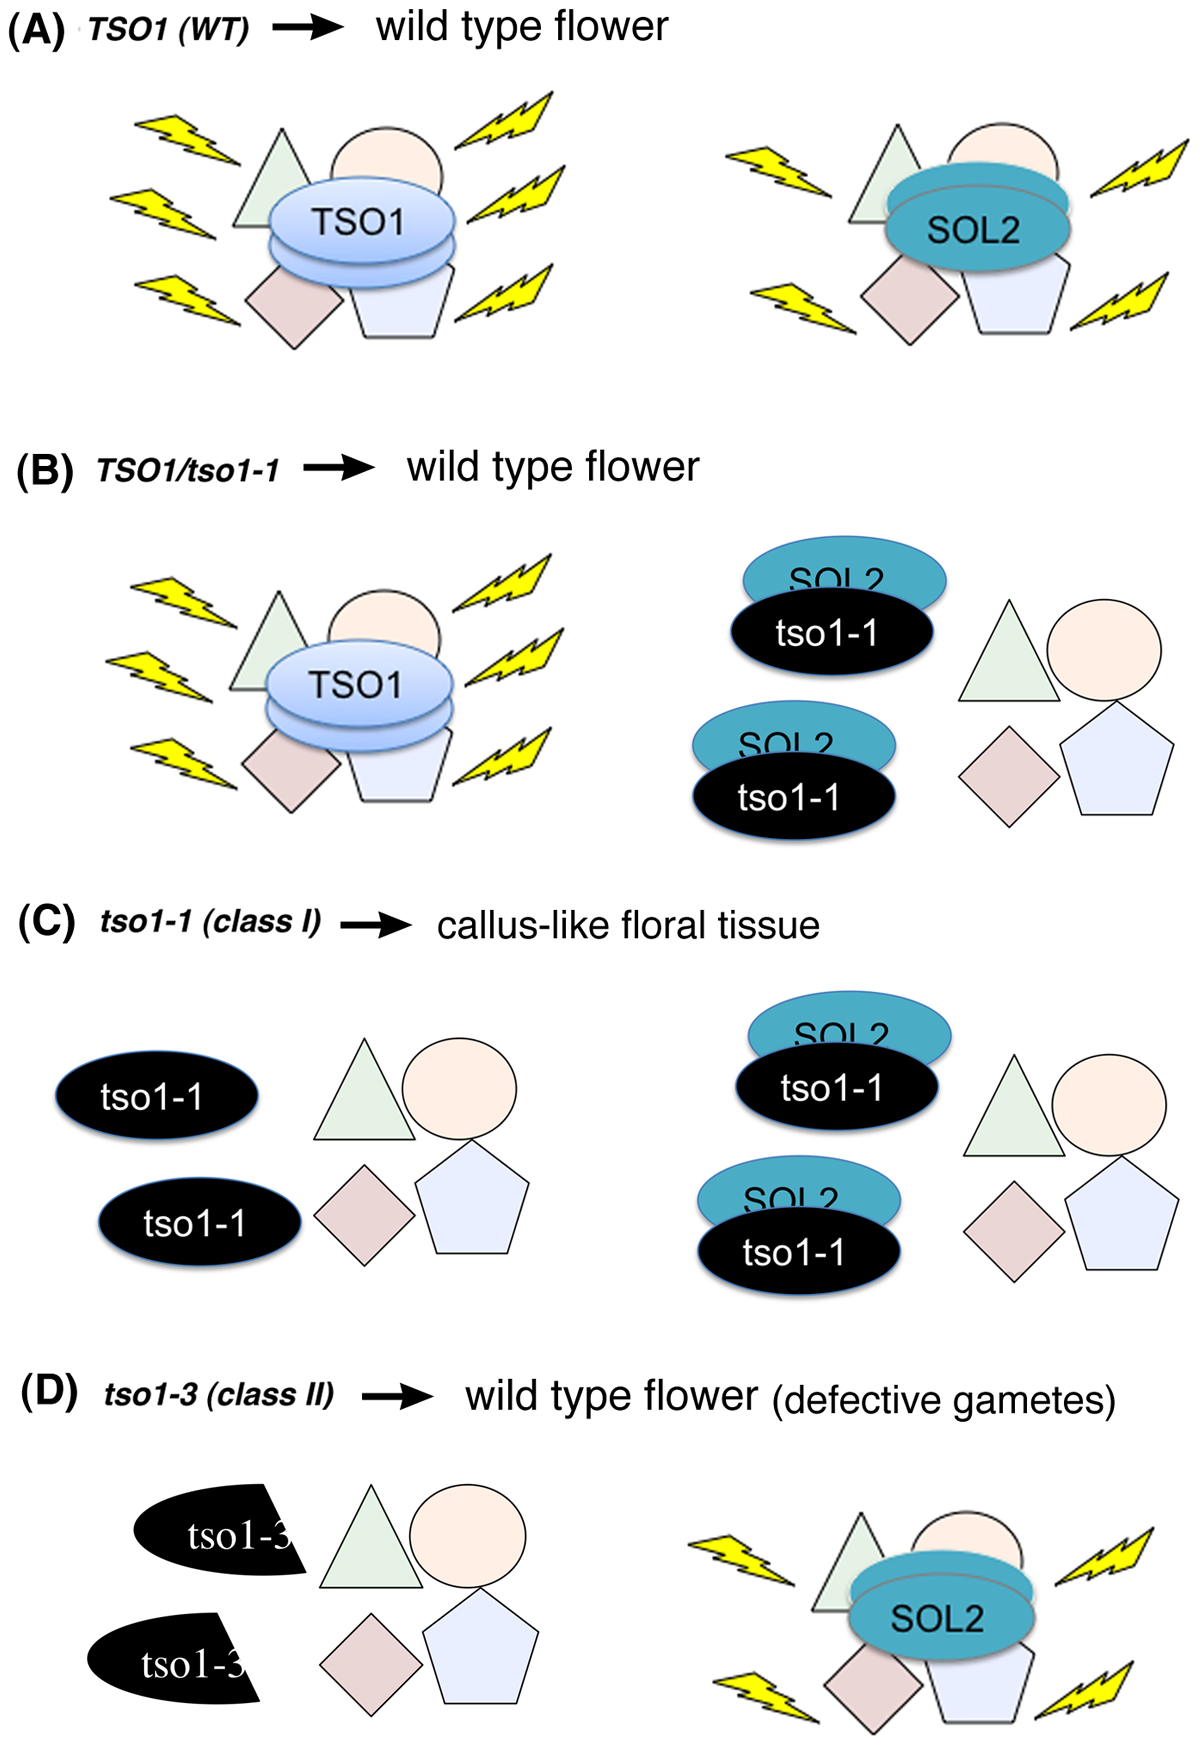 A proposed model on the molecular mechanism of <i>tso1-1</i> antimorphism in the context of flower development.